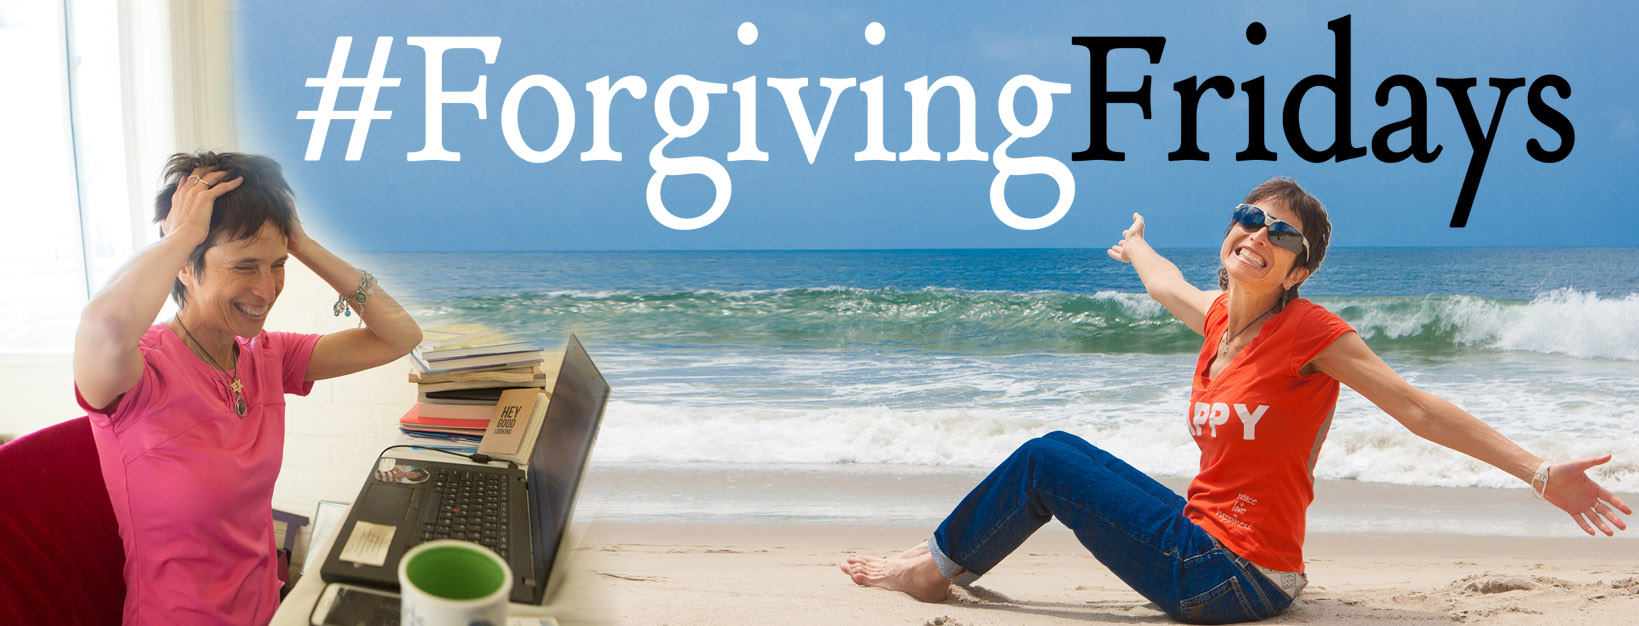 Forgiving Fridays banner facebook